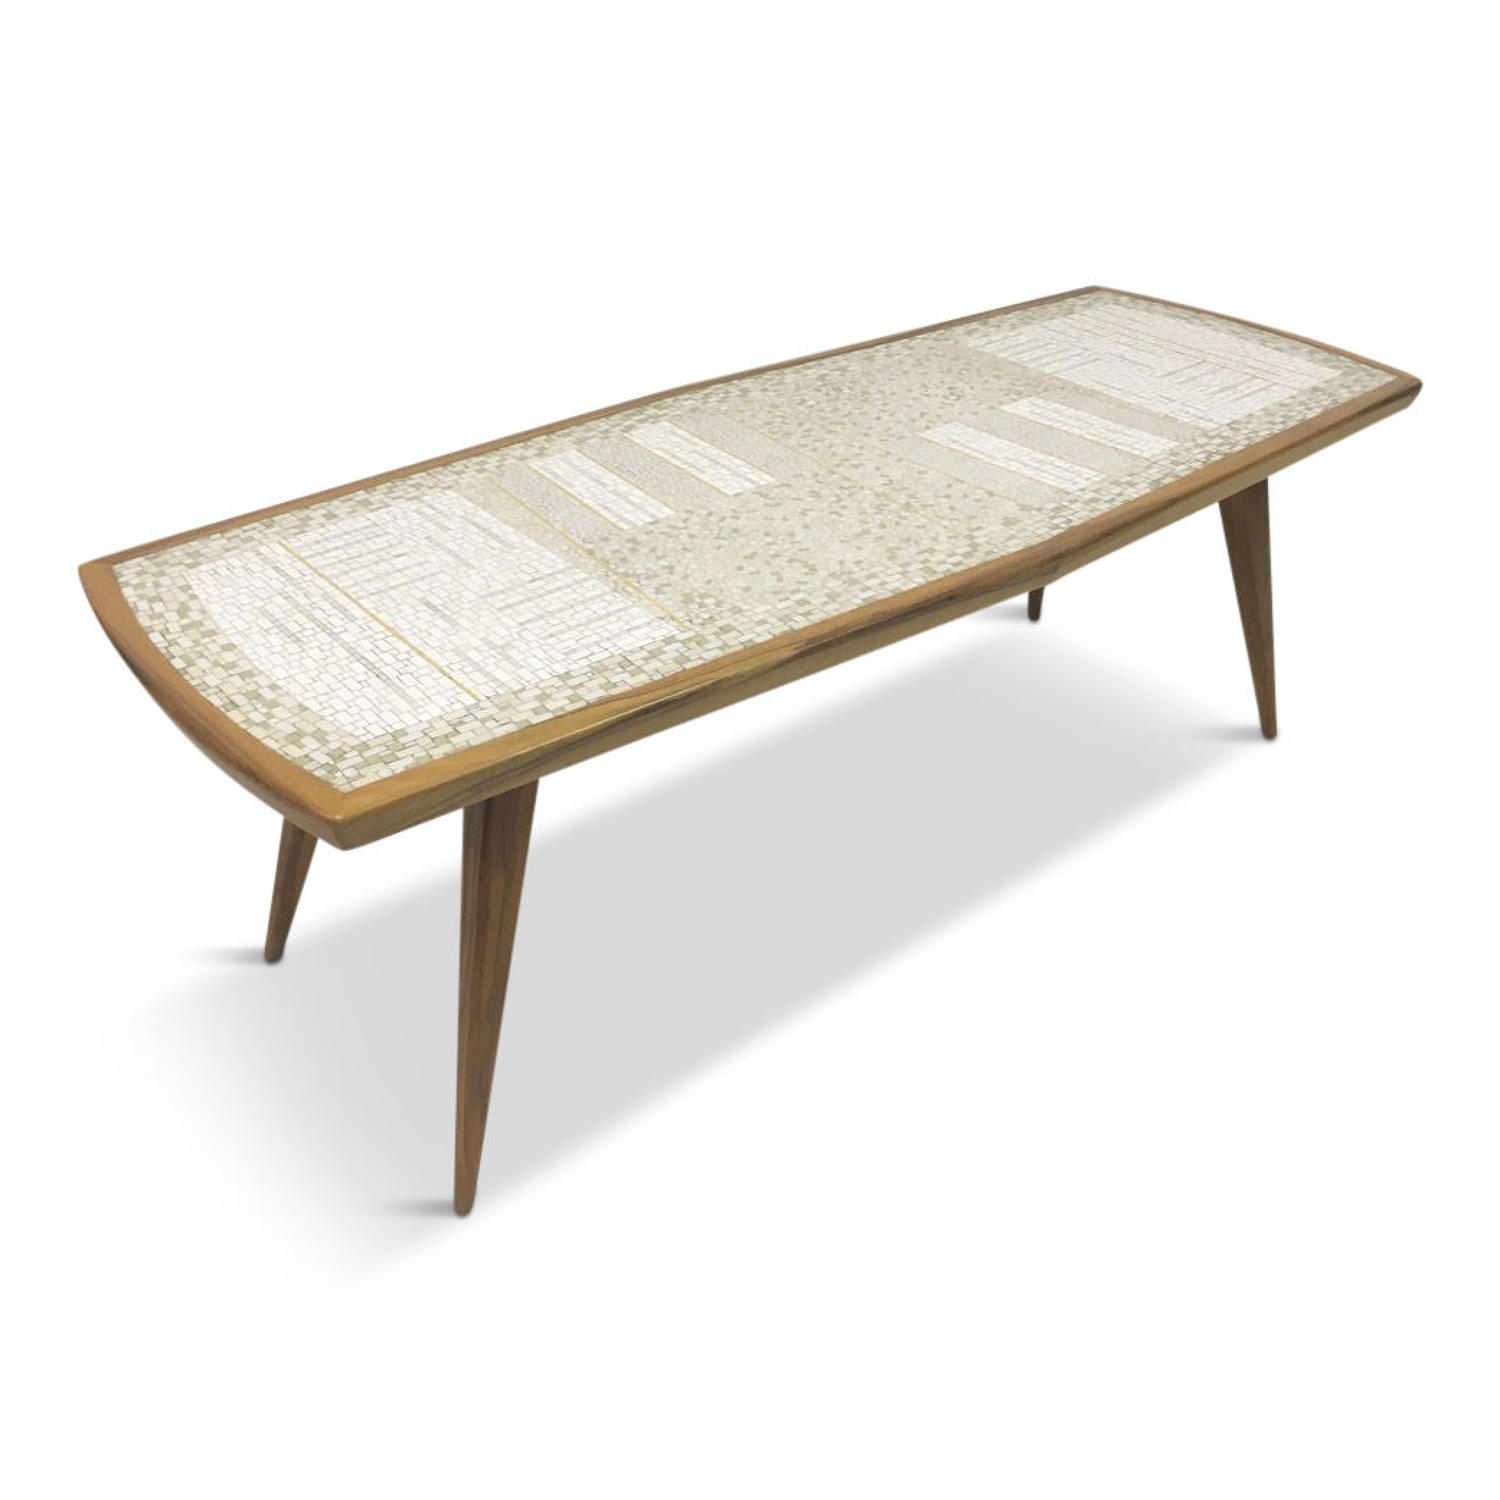 1960s mosaic tile coffee table by Berthold Muller